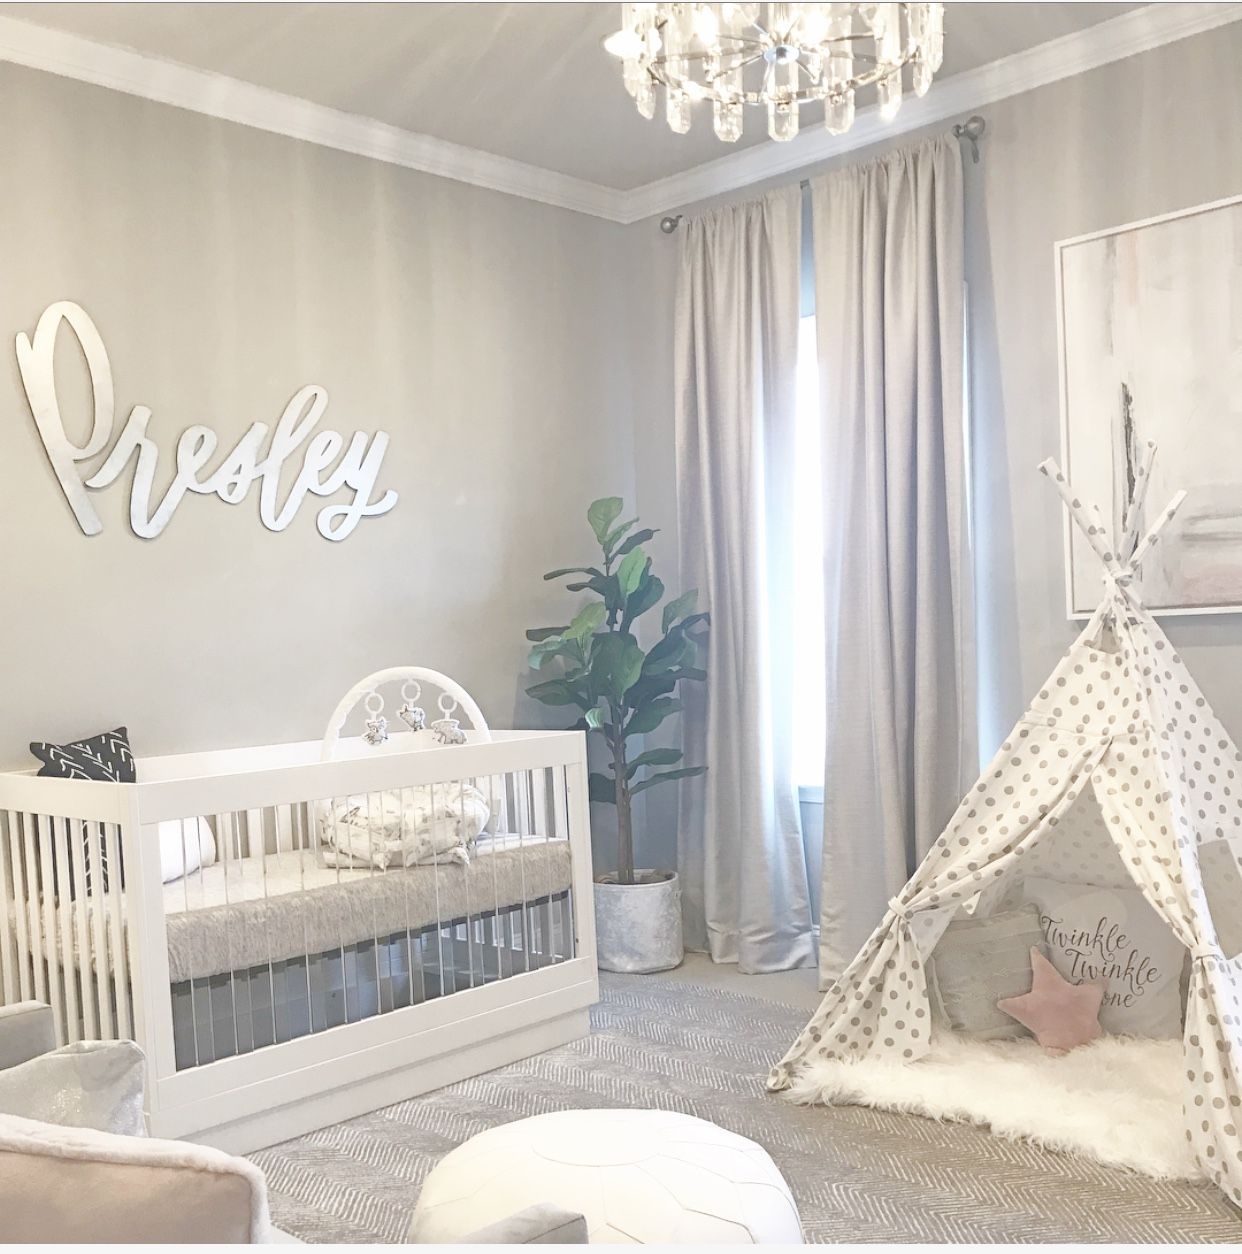 Presley Project Nursery Nursery Baby Room Baby Girl Nursery Room Baby Nursery Inspiration